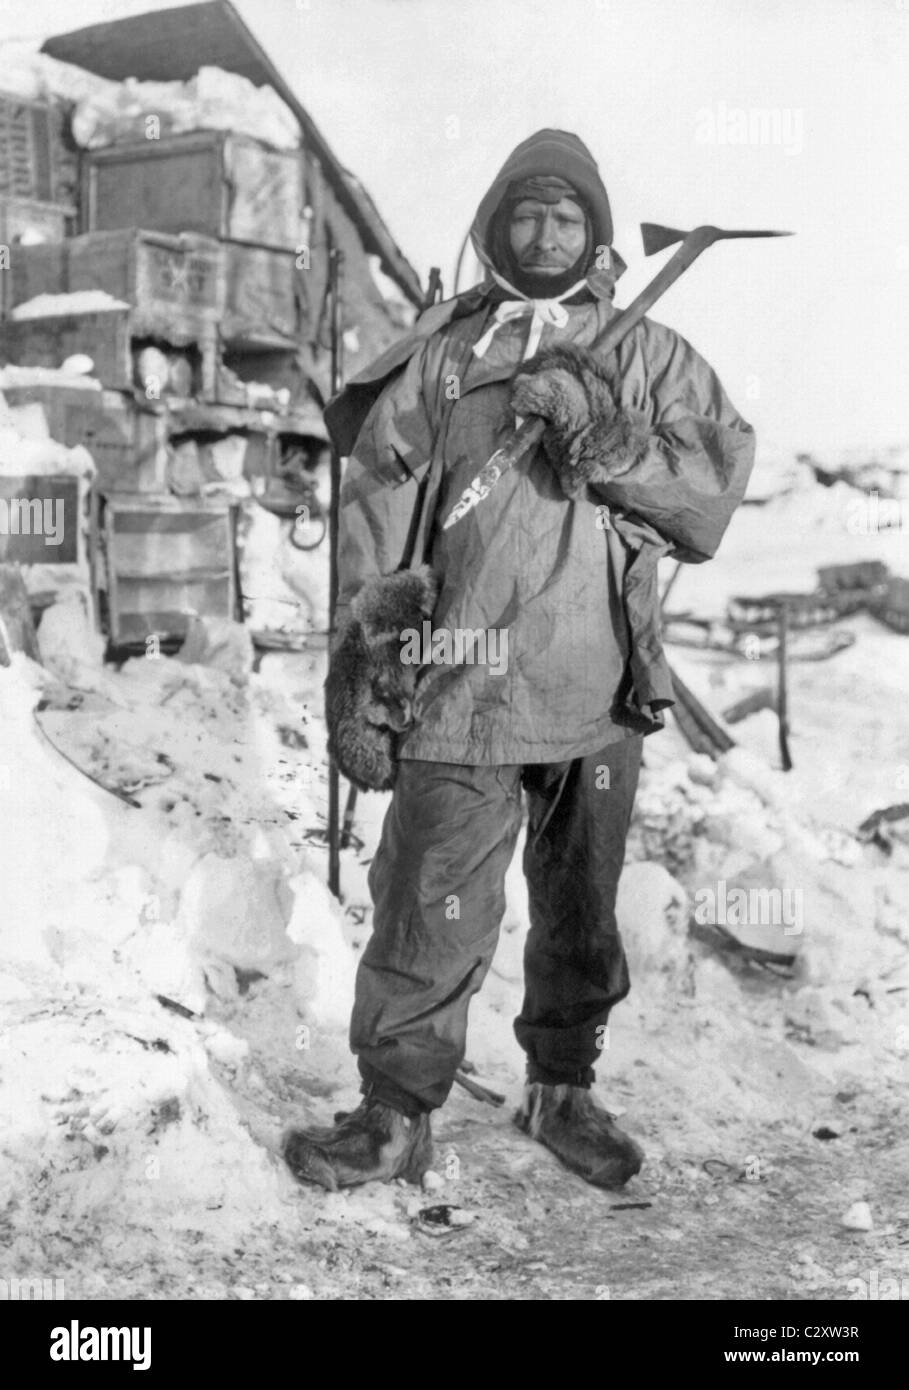 Edgar Evans (1876 - 1912) - a member of Robert Scott's Terra Nova Expedition that perished after reaching the - Stock Image